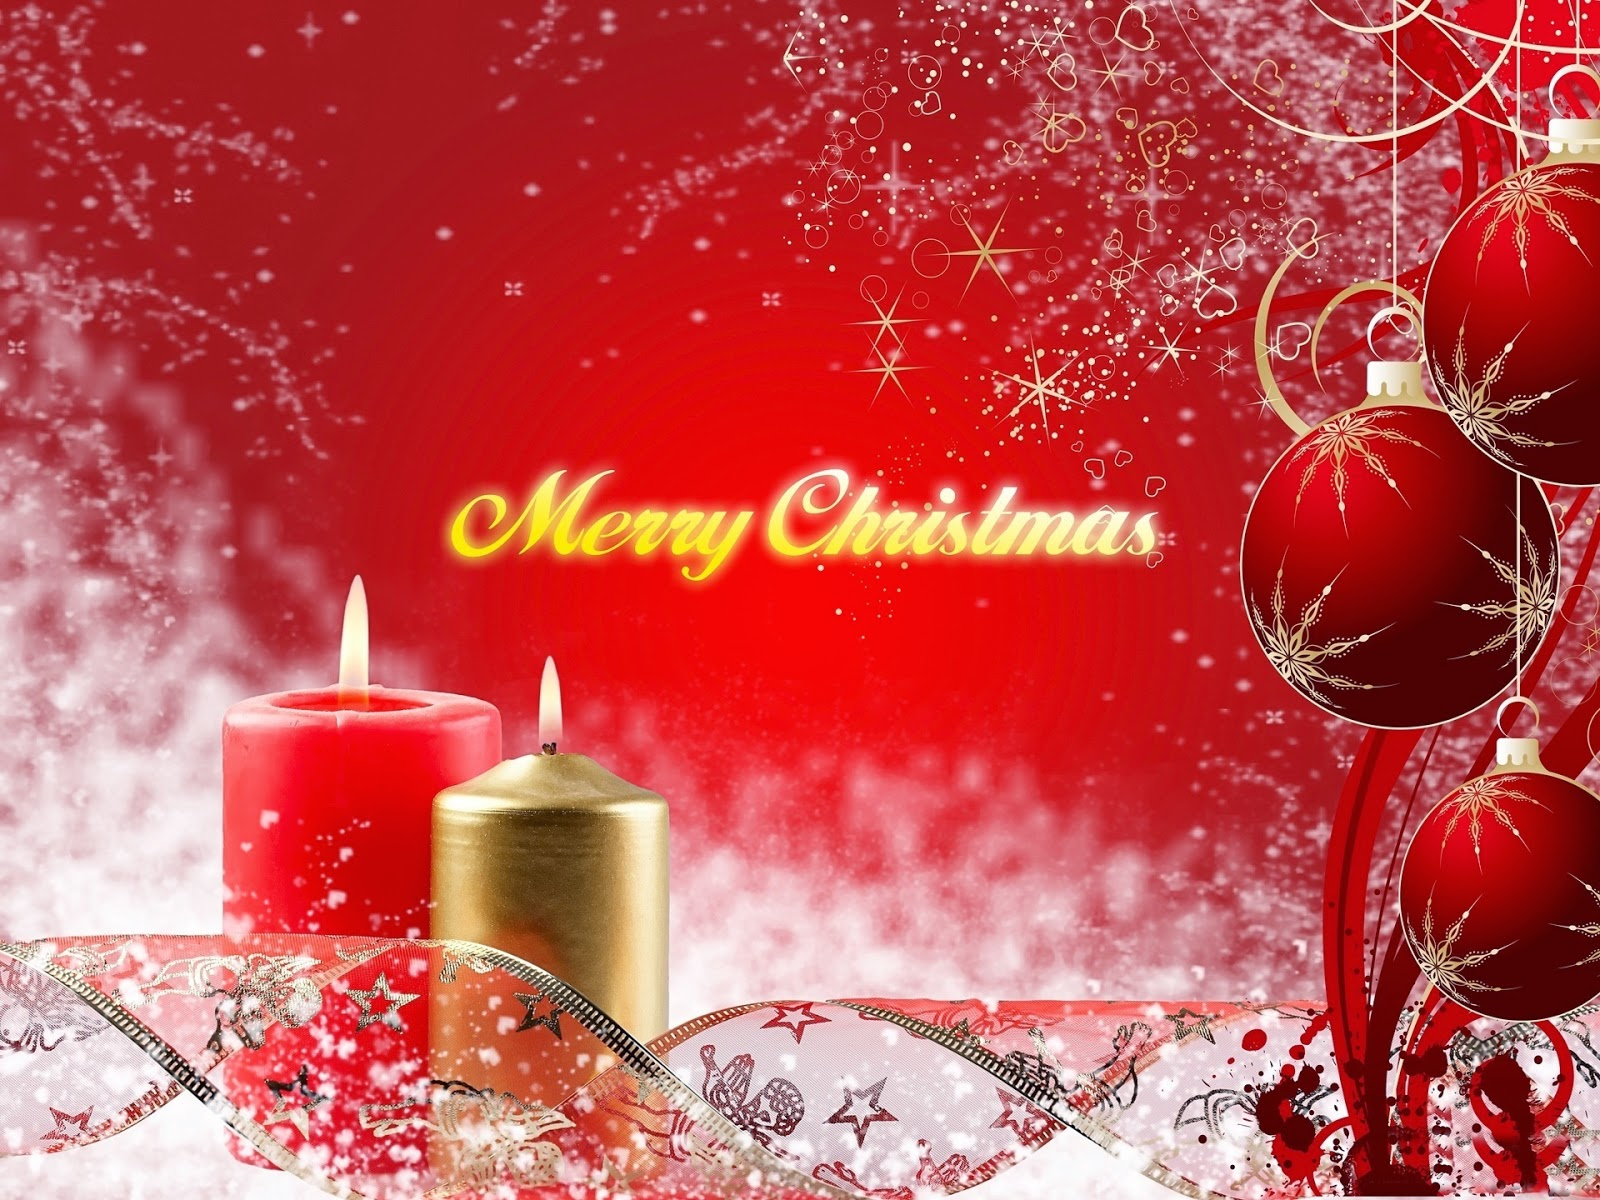 Merry-Christmas-wishes-texted-image-red-background-theme-with-candles-baubles.jpg